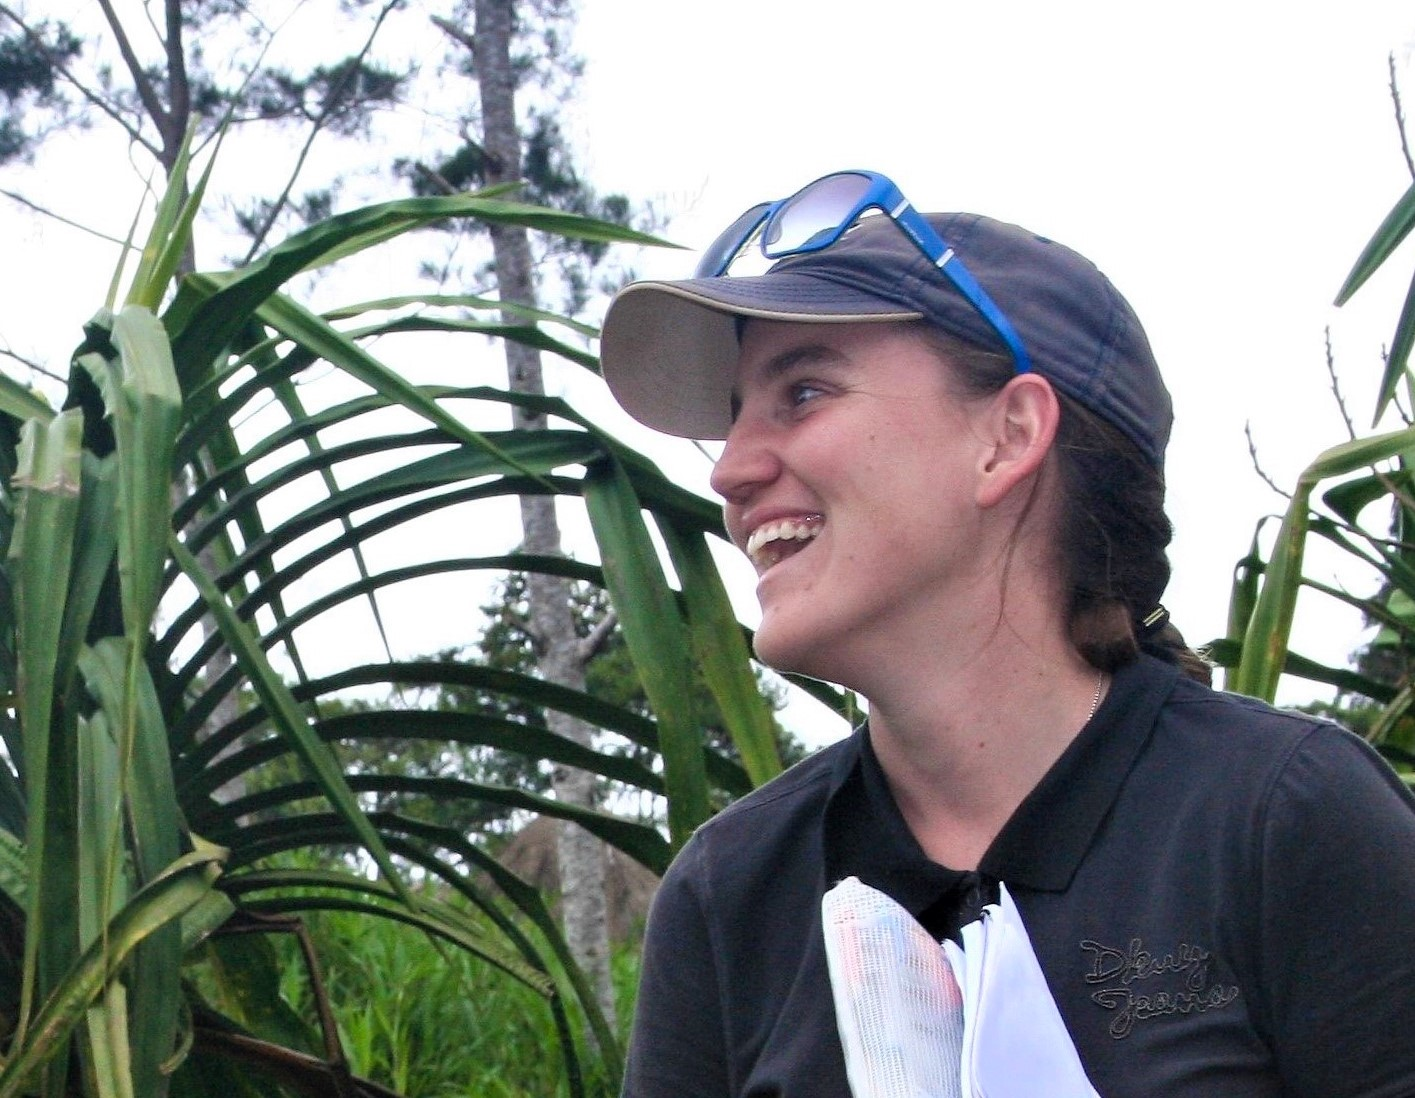 Rachel is pictured holding a notebook of fieldnotes. She is wearing a baseball cap and sunglasses and is laughing with an interviewee (who is just out of frame).